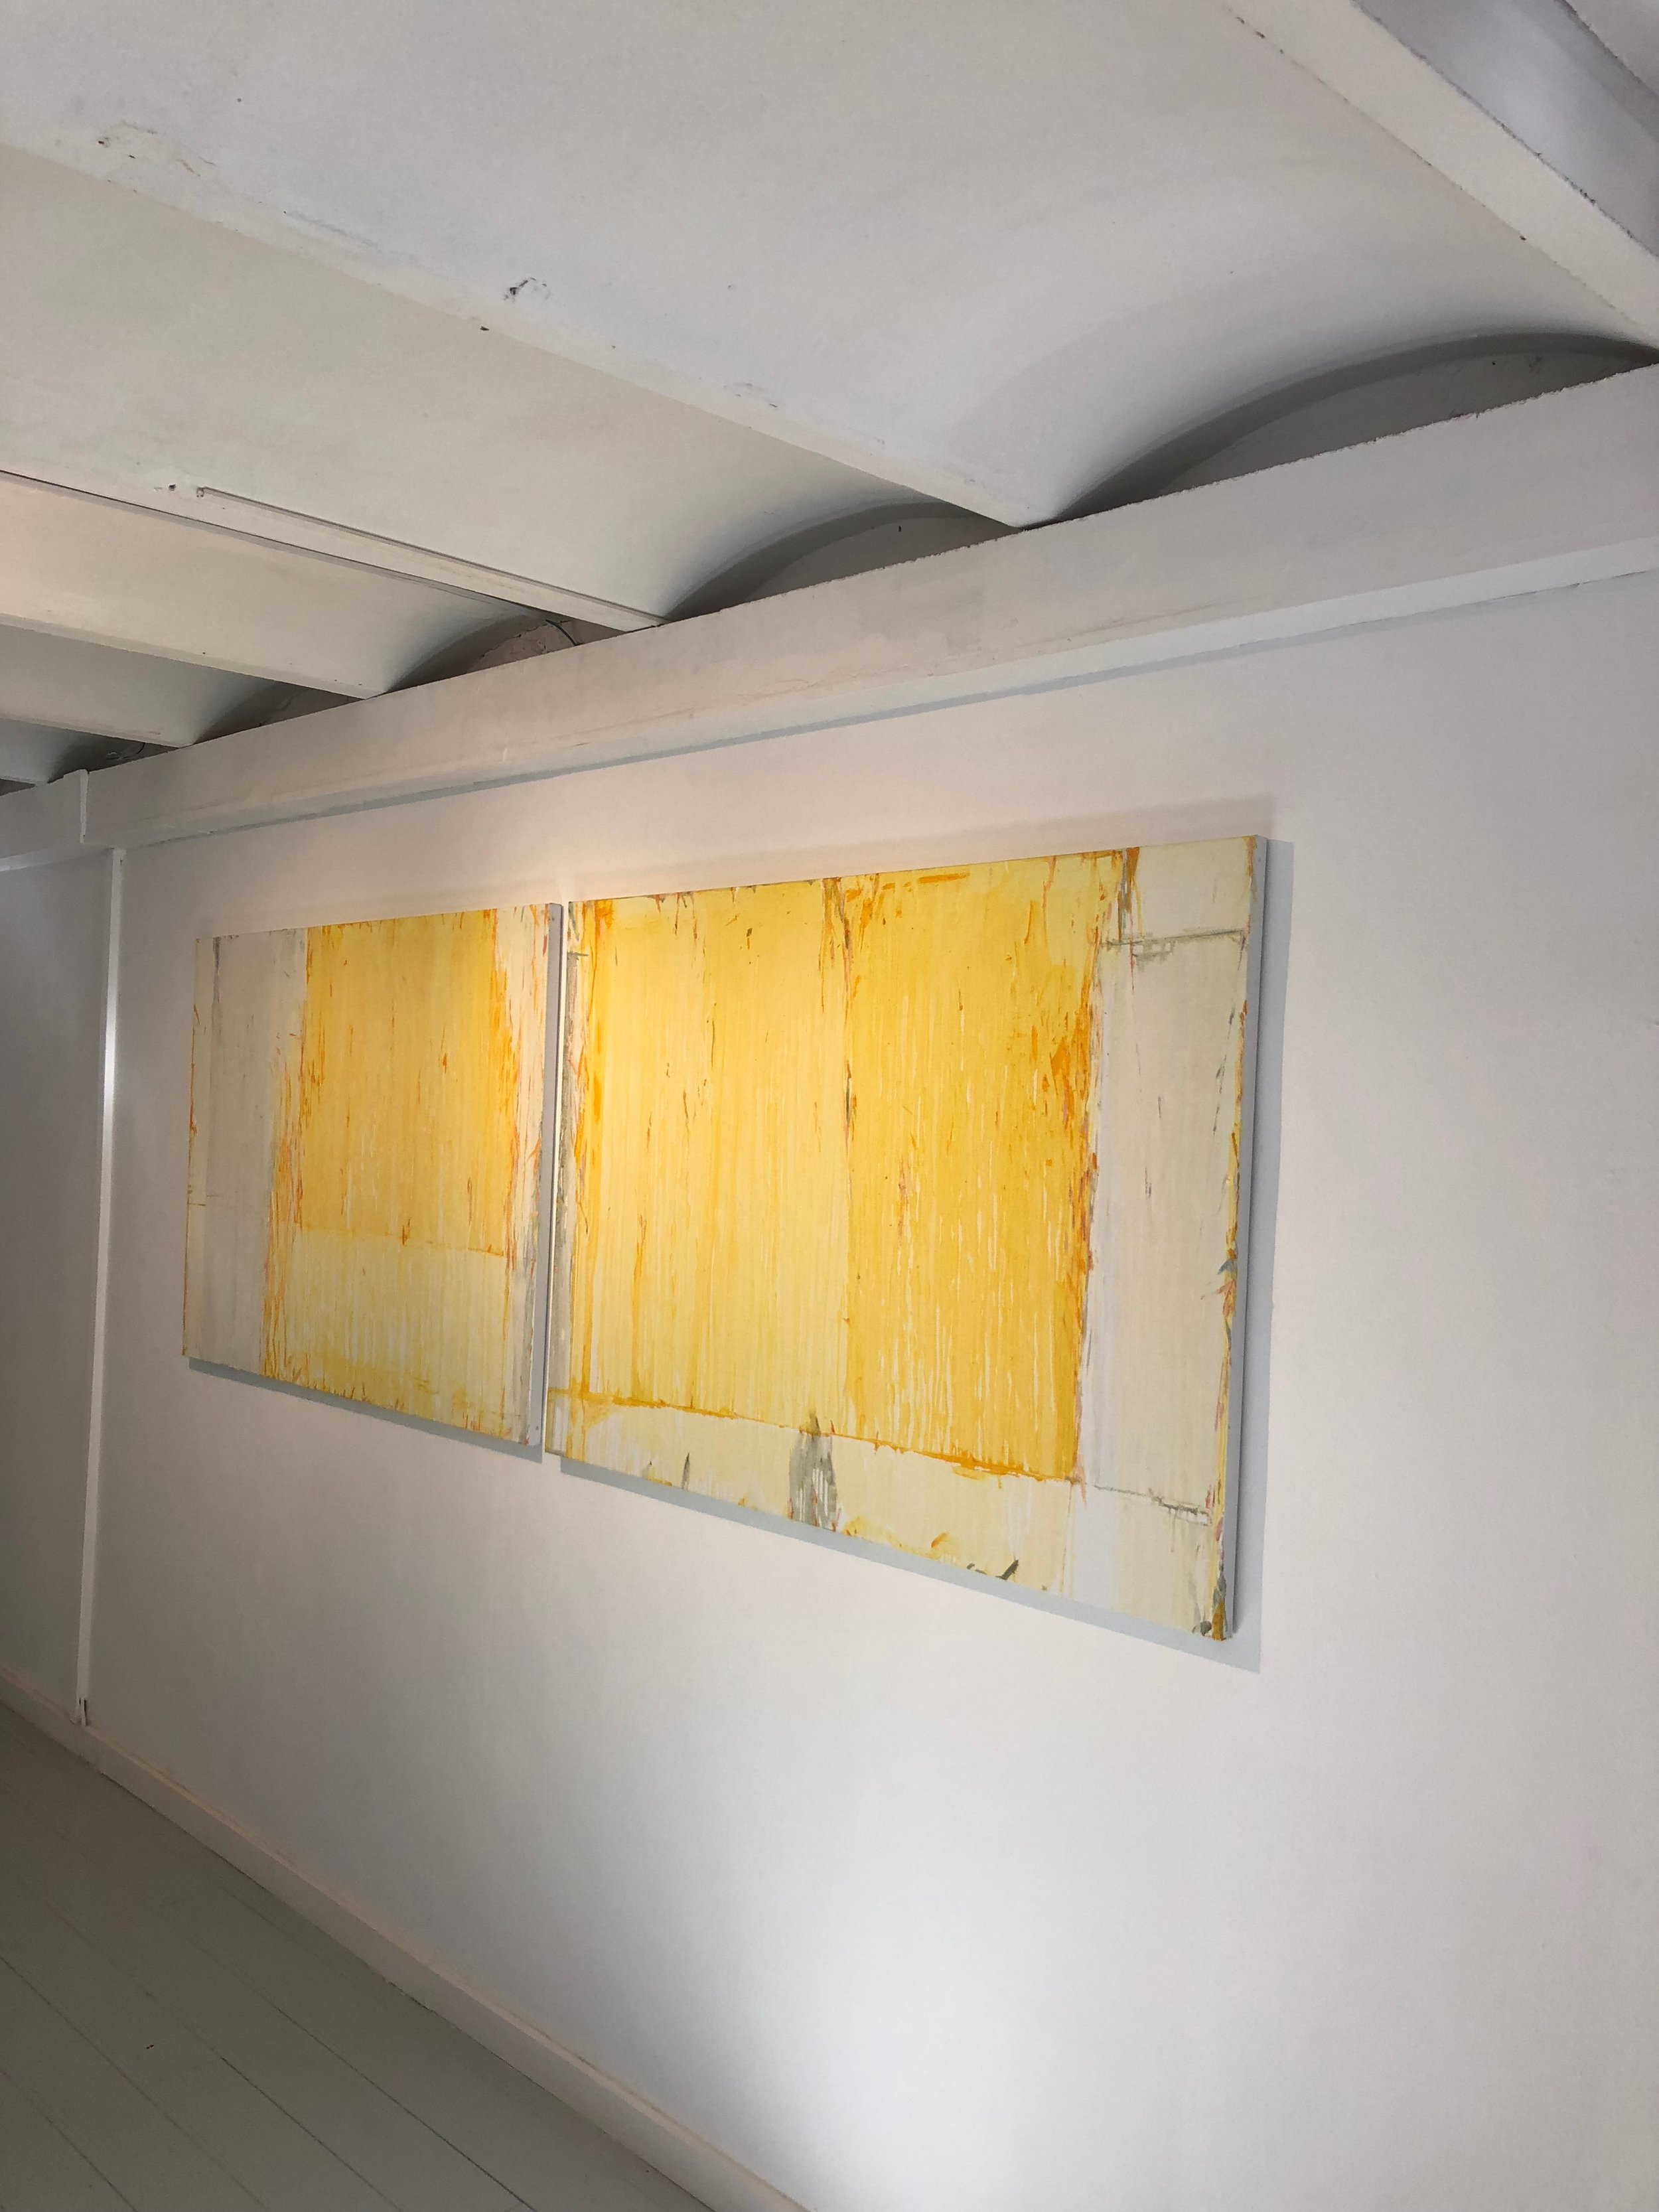 Pietro Capogrosso's dreamy works at L&B gallery